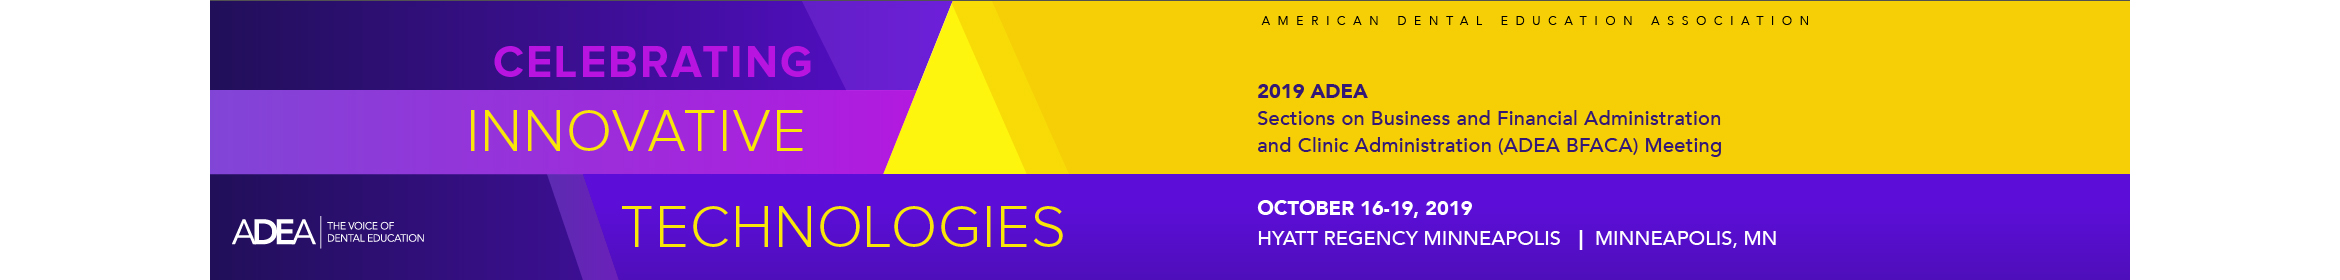 2019 ADEA BFACA Meeting Main banner